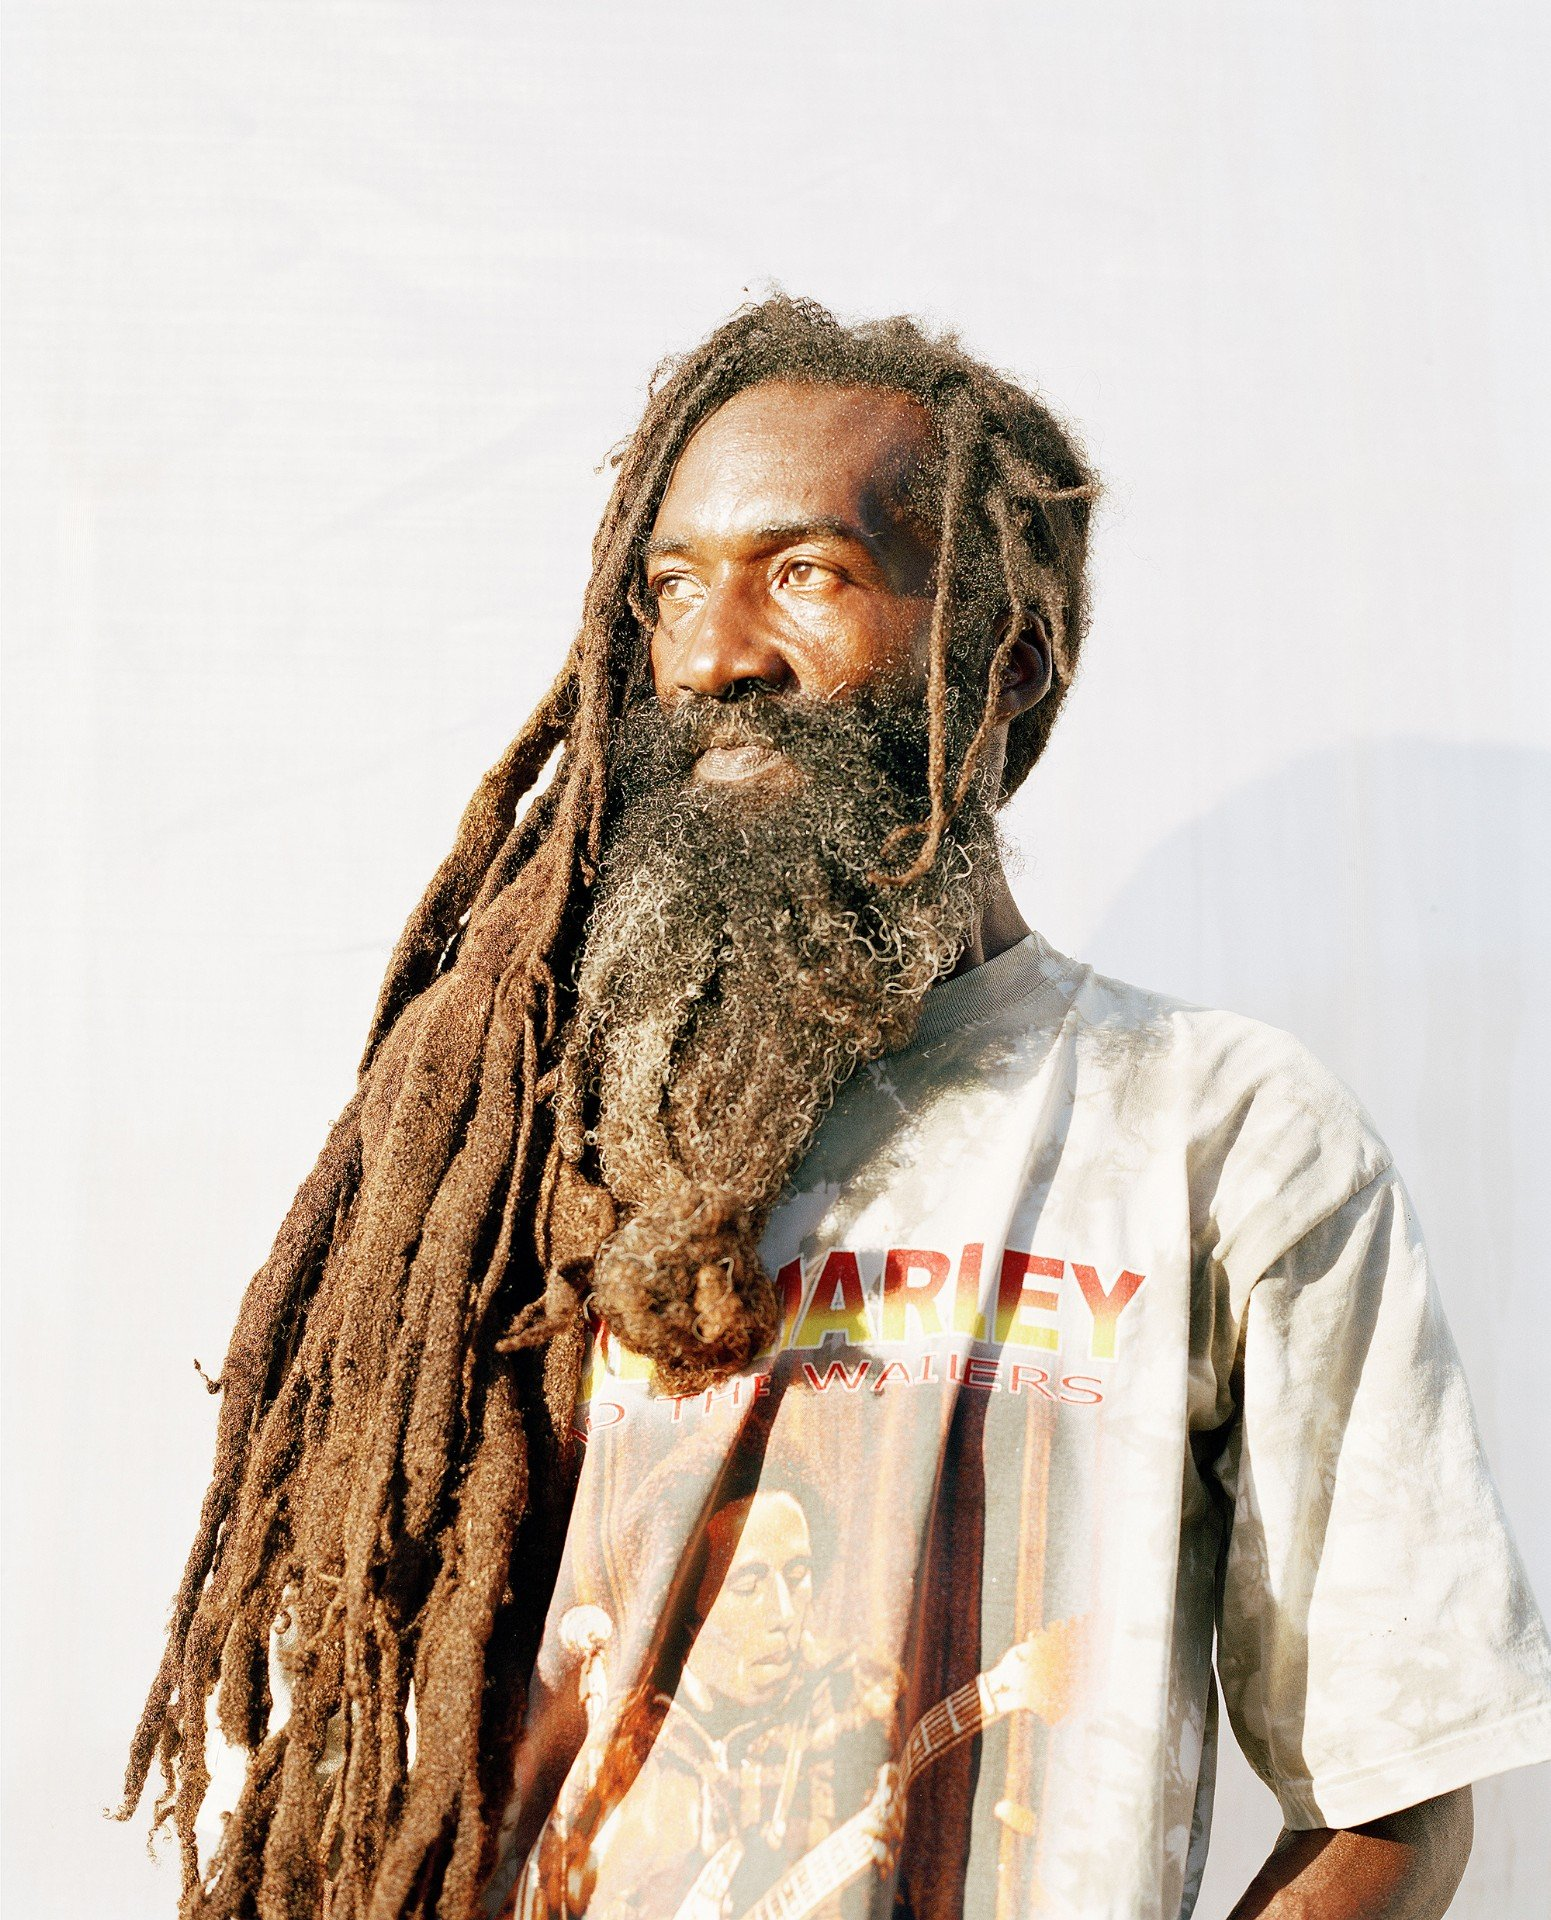 man with long hair color portrait photography in the Caribbean island of Nevis, by Catherine Hyland